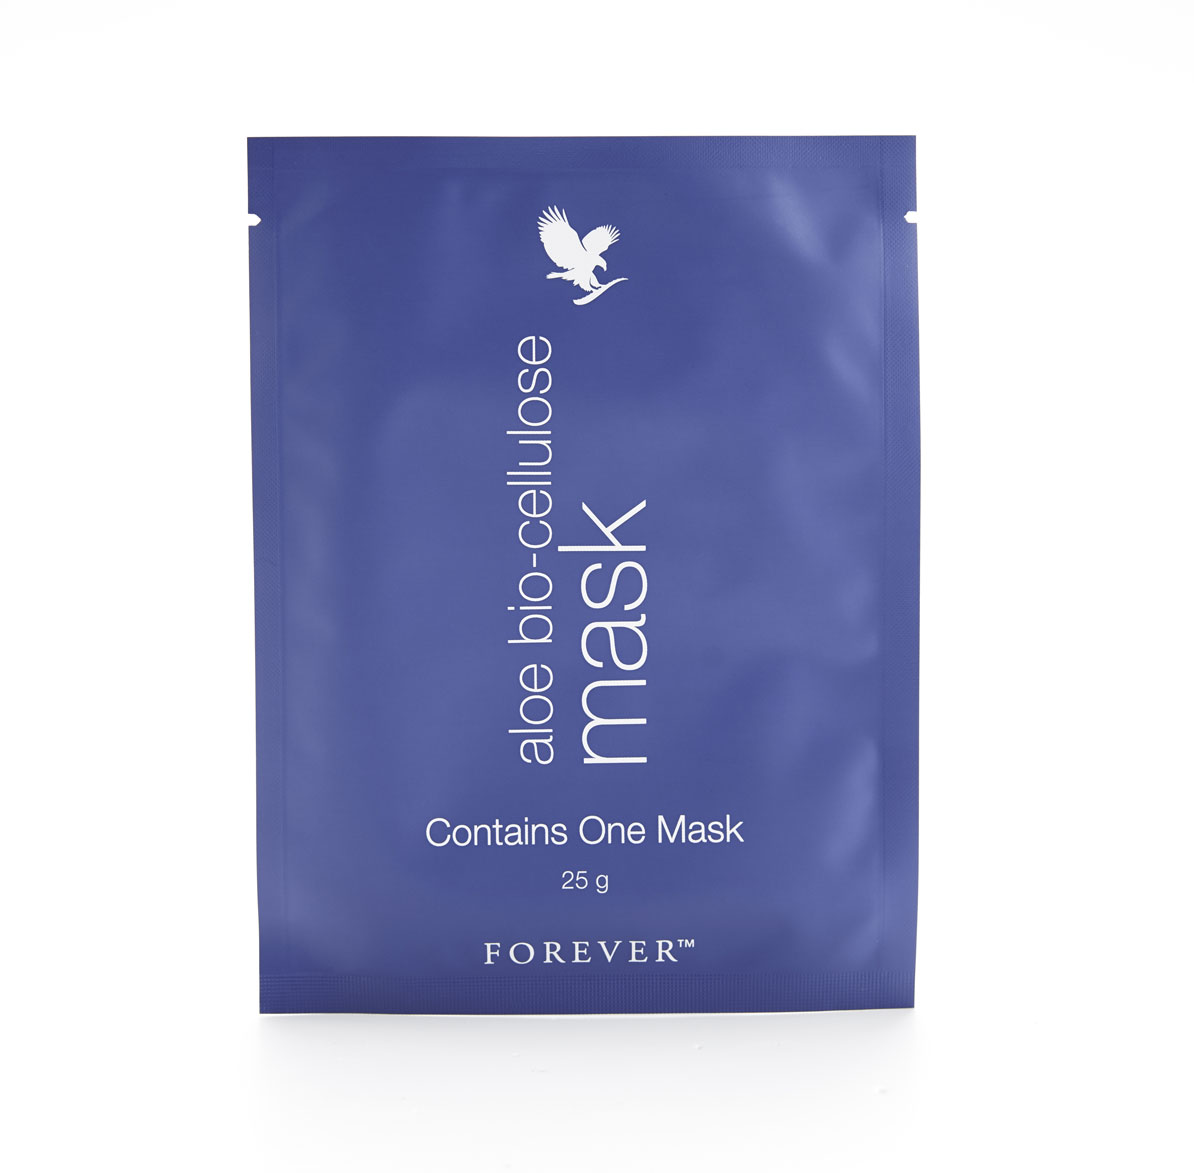 Forever's Aloe Bio-cellulose Mask provides potent hydration thanks to forward-thinking technology and natural ingredients. Its bio-cellulose fibres fit the contours of your face to deeply moisturise and to ensure every impressive botanical penetrates the fine lines and wrinkles traditional sheet masks fail to reach. Through a process unique to Forever, Aloe Bio-cellulose Mask's formula fuses pure aloe and seagrass with the bio-cellulose fabric to soothe, soften and condition skin. This environmentally-friendly mask has also been enriched by a moisturising serum of green tea and horse chestnut that rejuvenates dull skin by combatting the signs of ageing and reducing the appearance of redness.